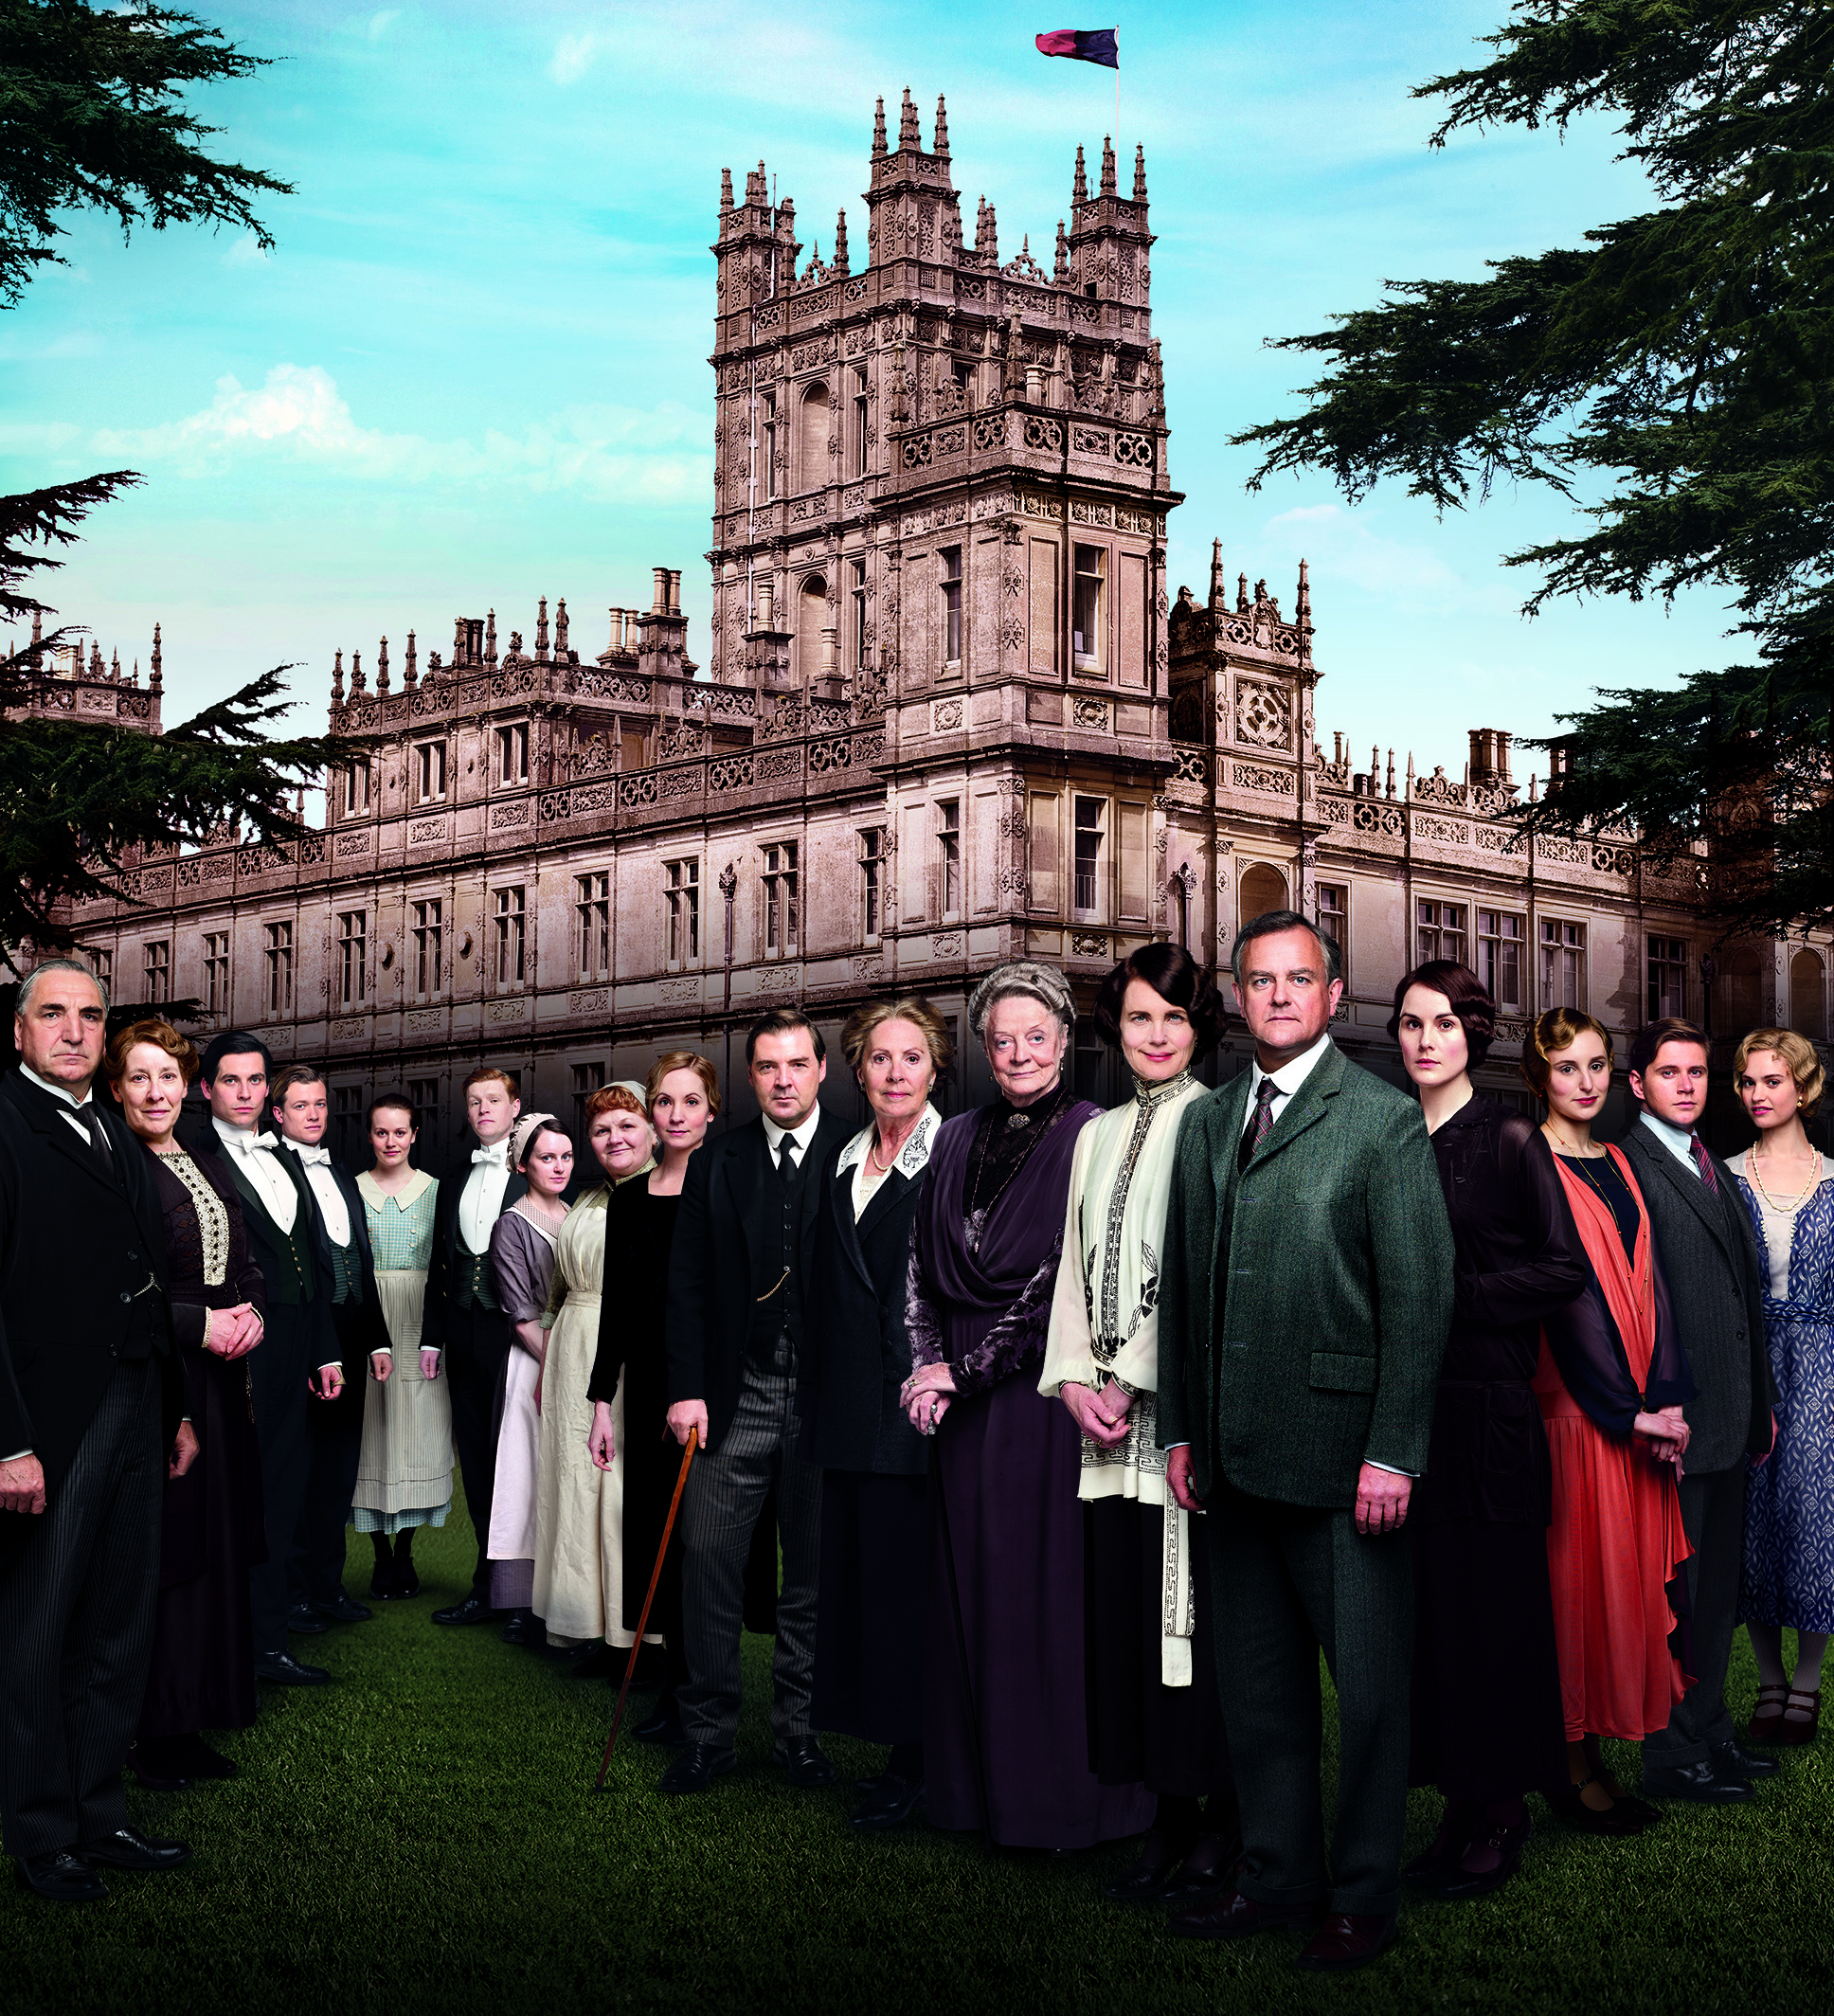 Downton Abbey season 4 cast new